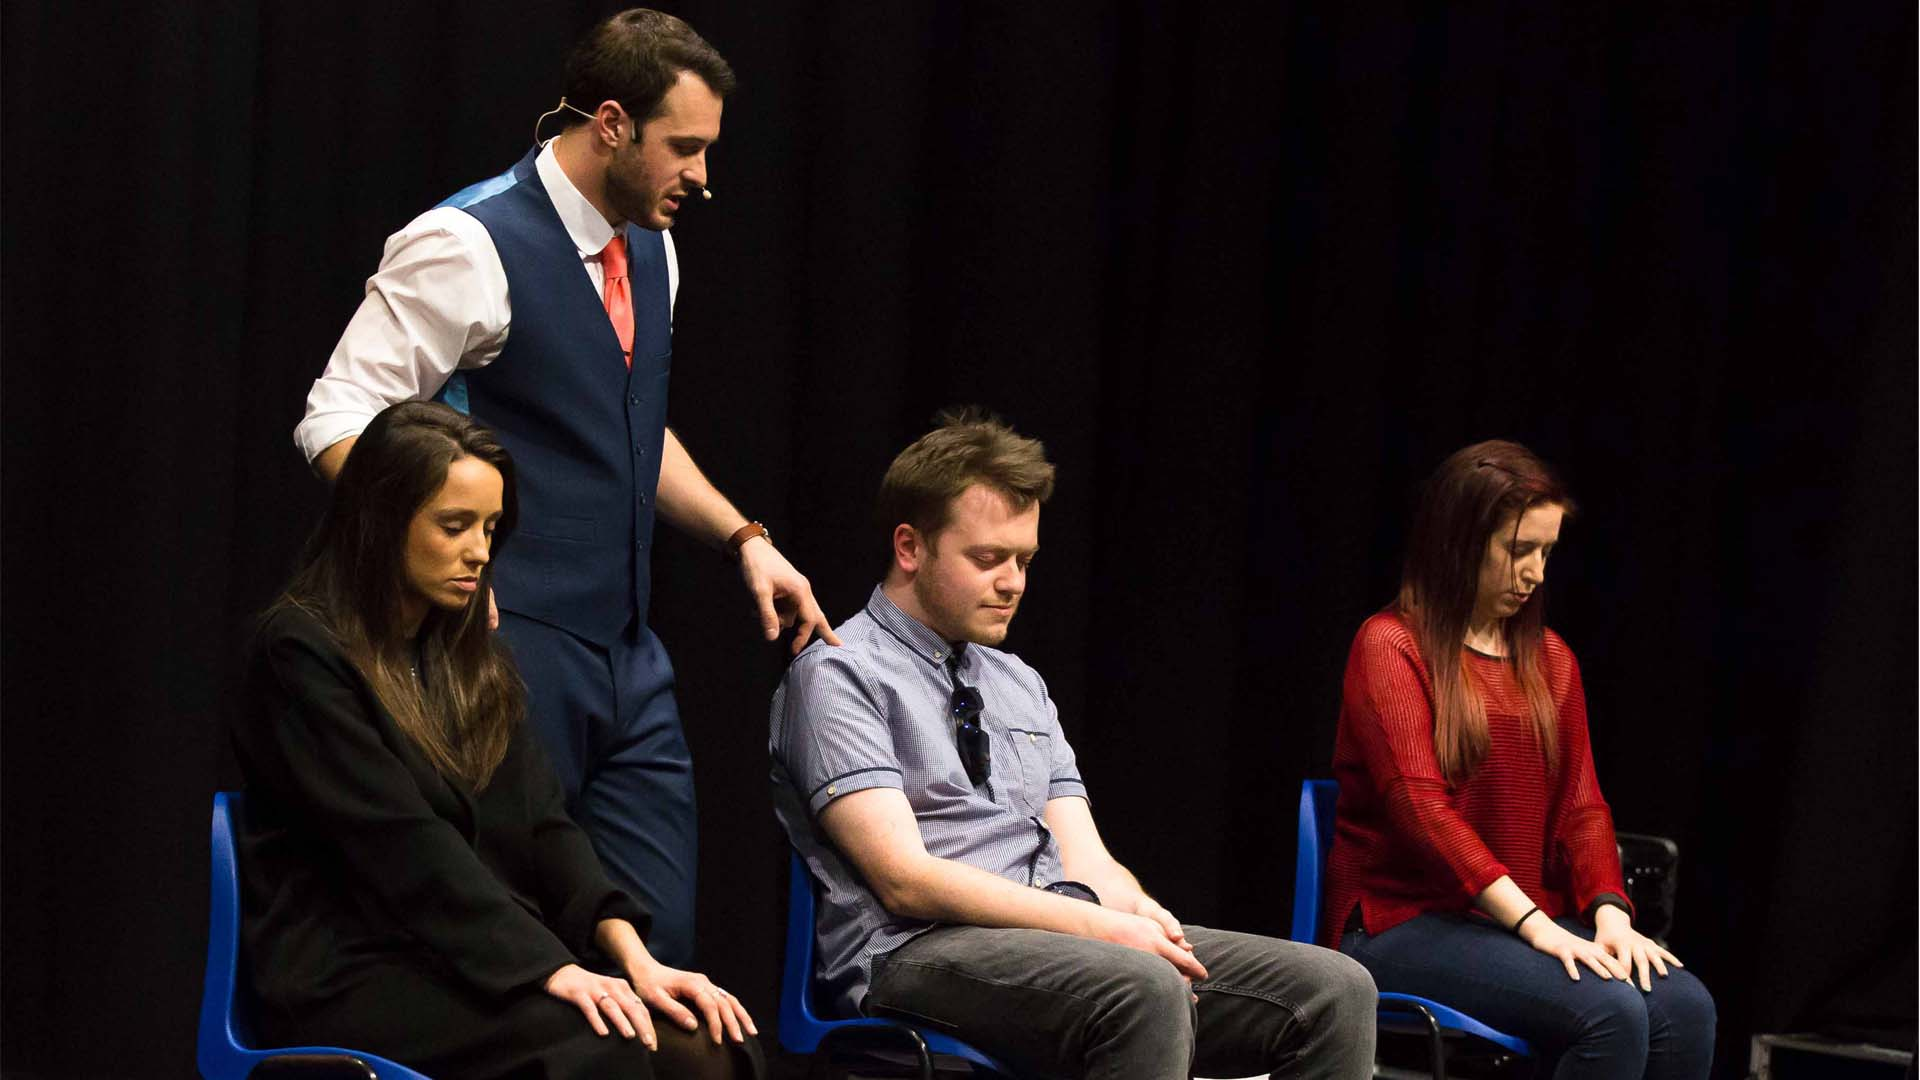 Edinburgh fringe particpants hypnotised on stage in mind games